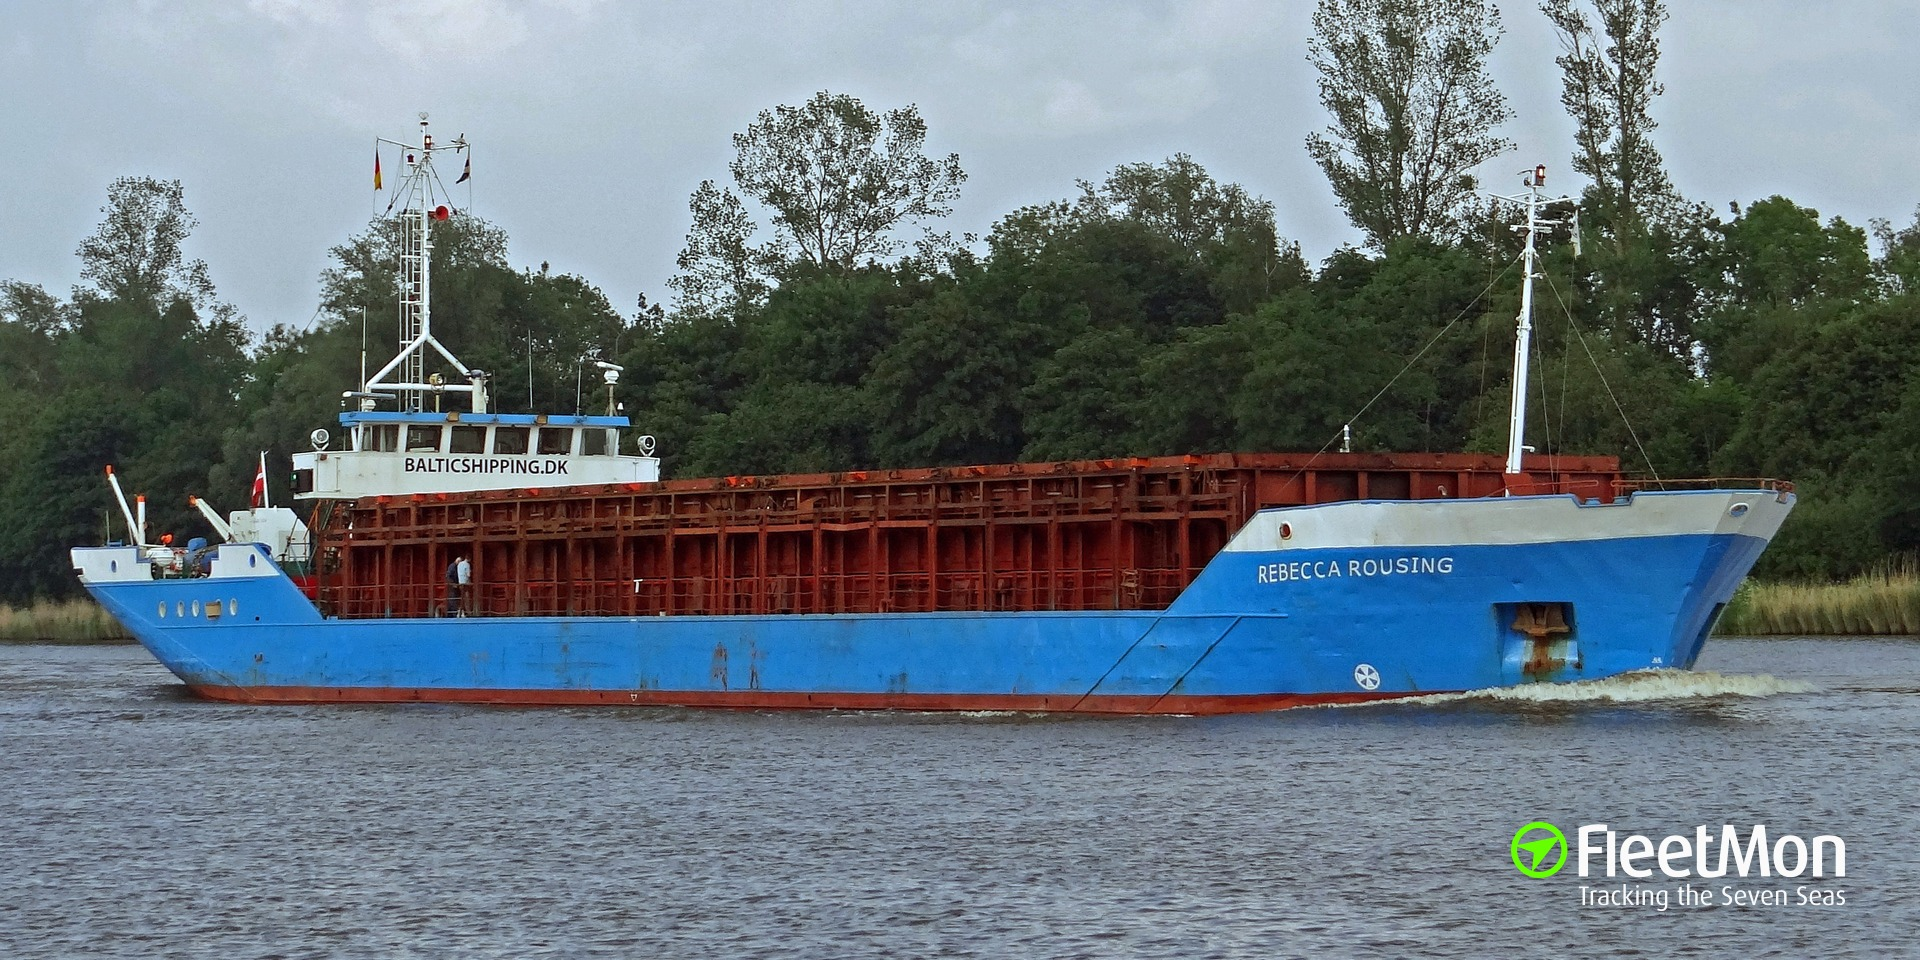 General cargo vessel Rebecca Rousing under tow to shelter, Baltic sea